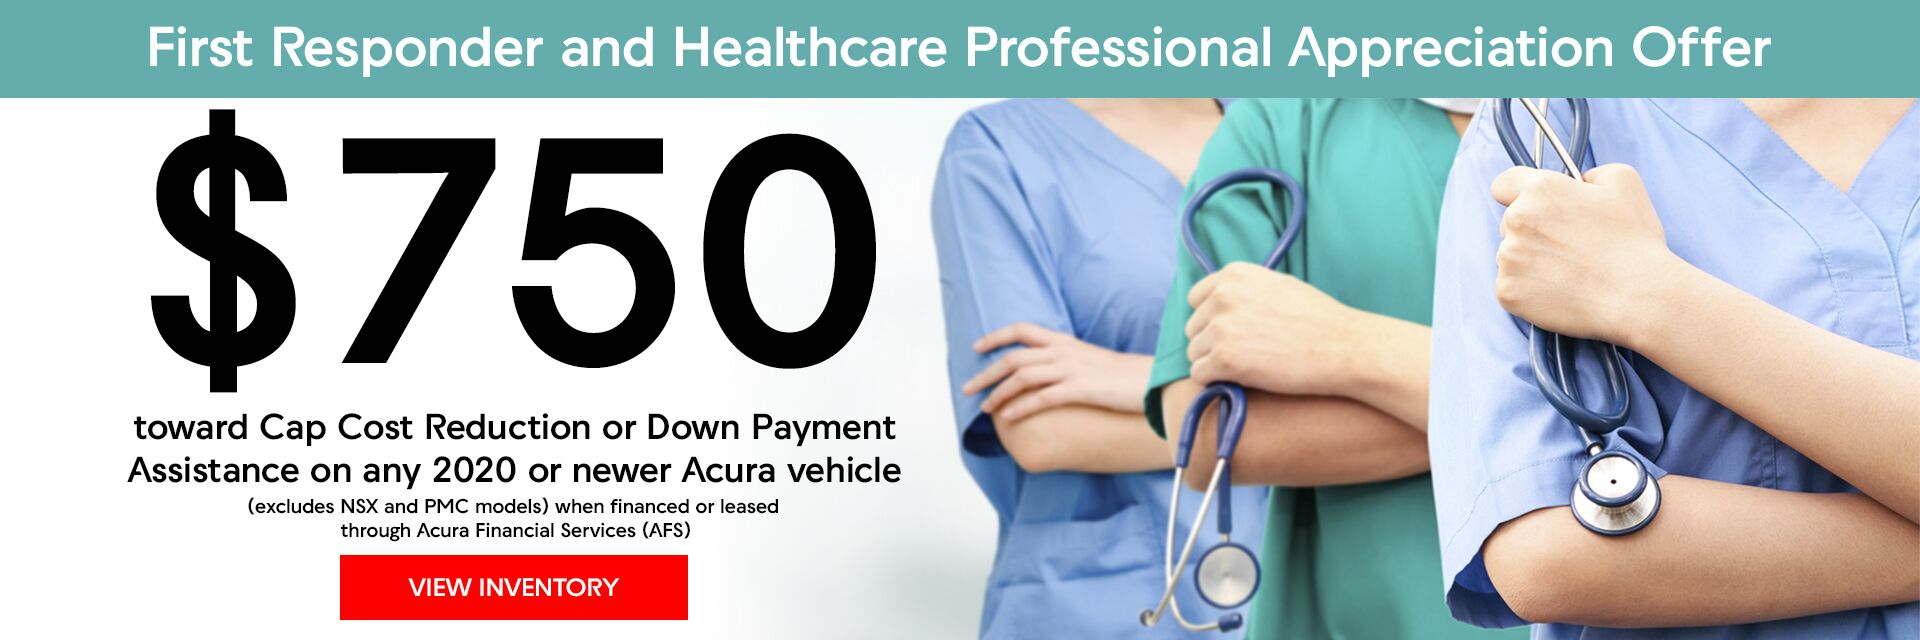 Acura First Responder & Healthcare Professional Appreciation Offer